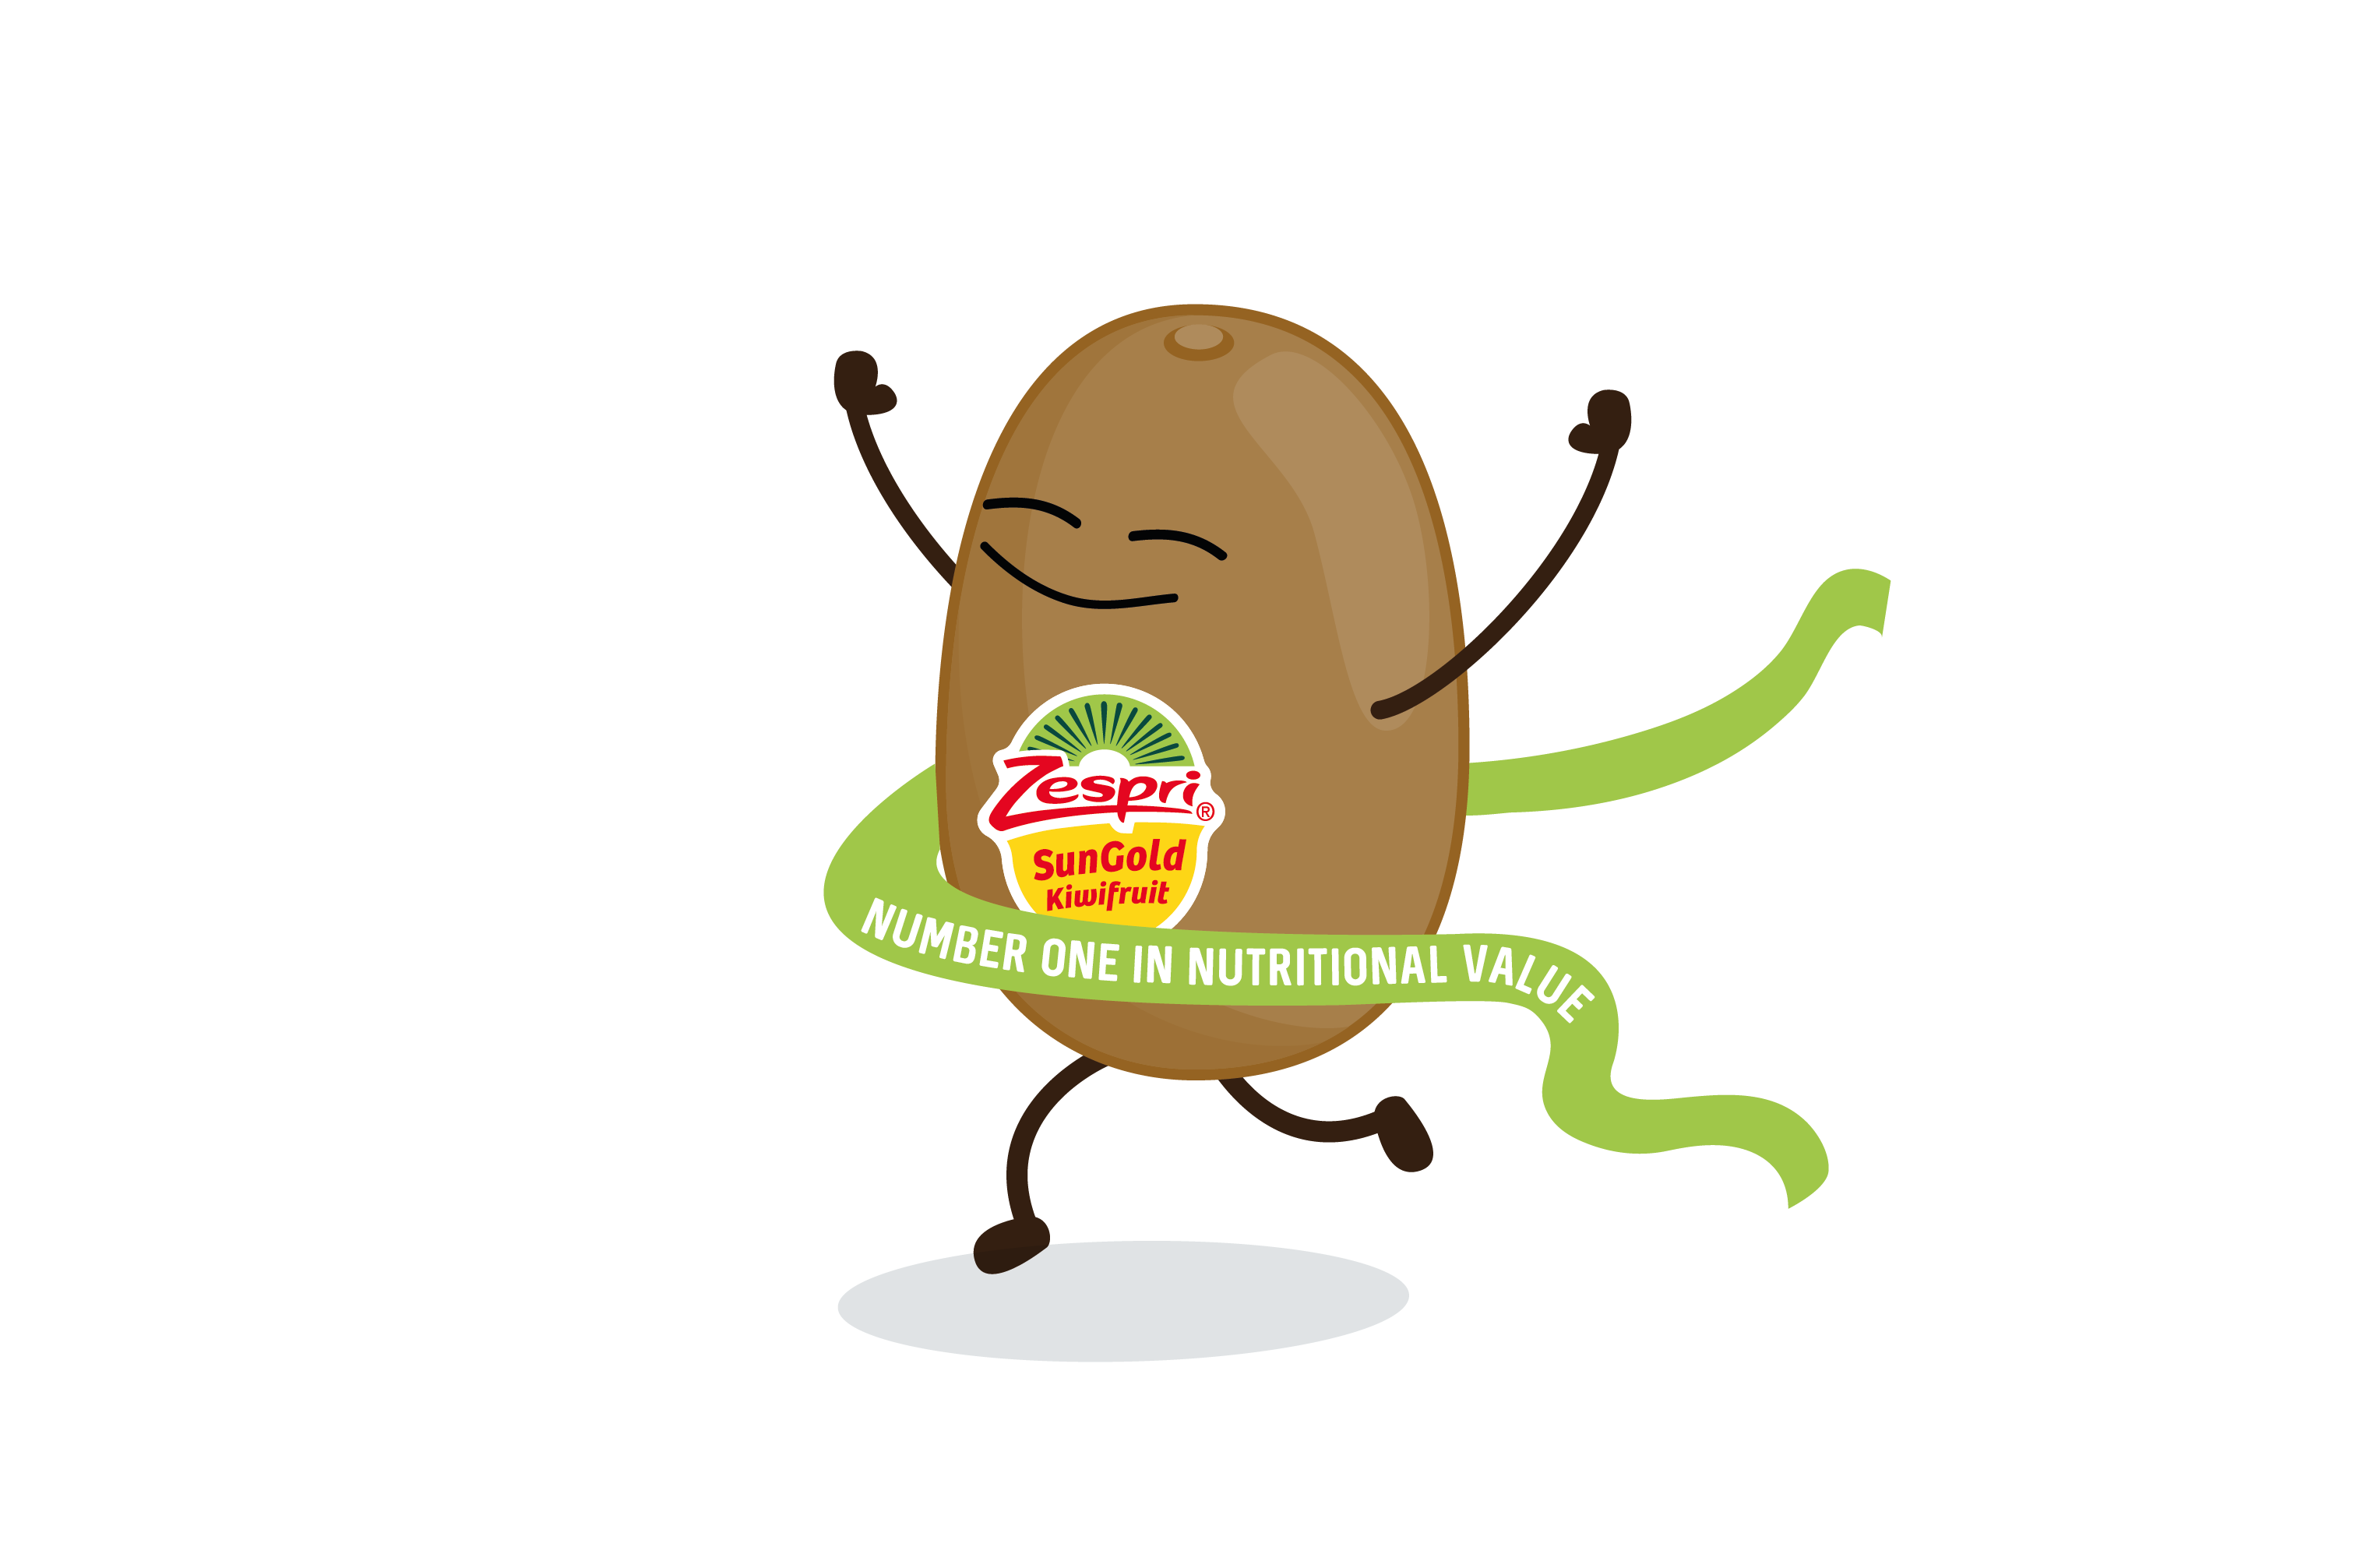 week32_Zespri_SunGold_kiwifruit_are_is_a_natural_source_packed_of_nutrients.png